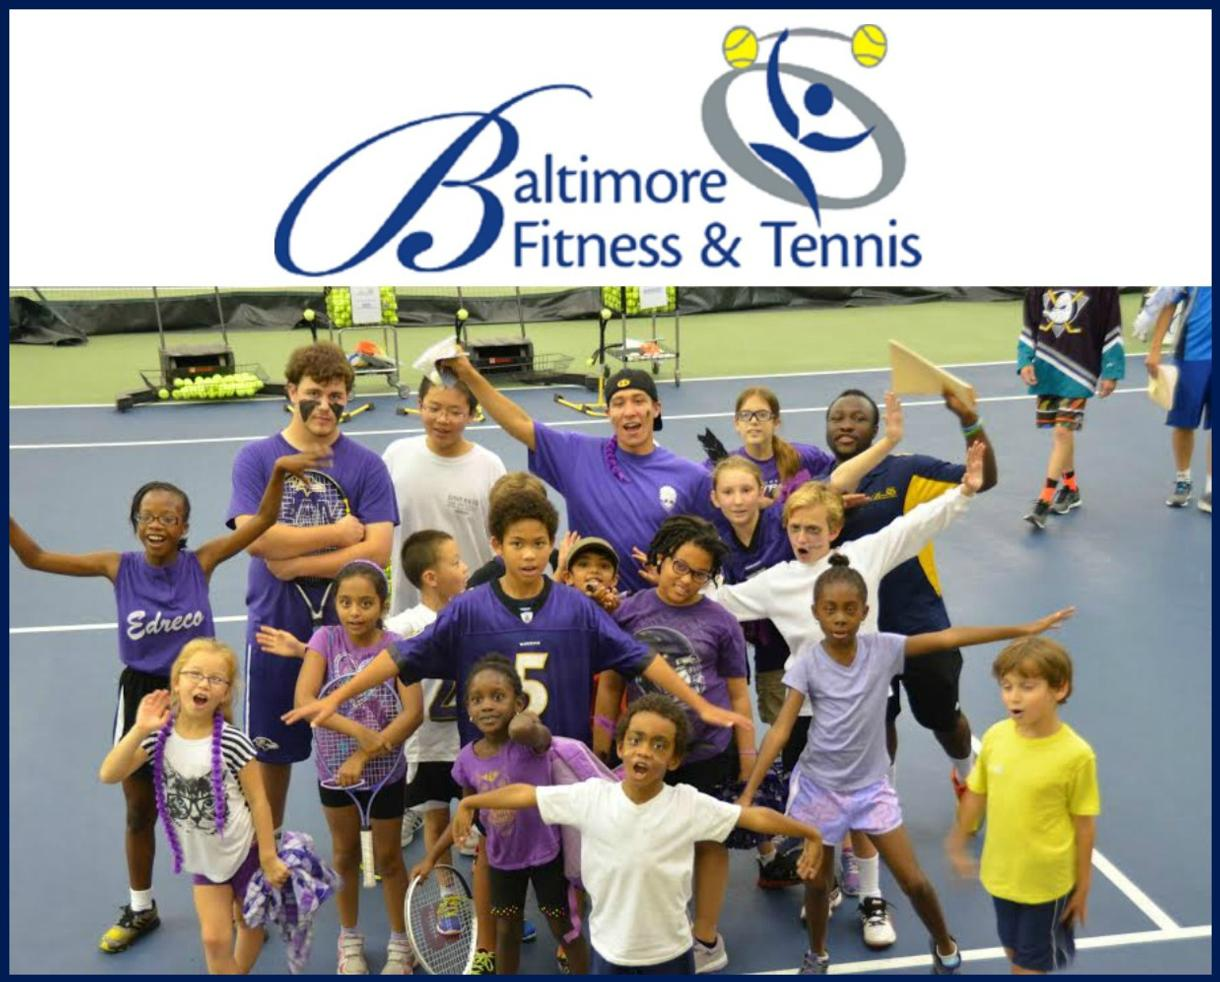 $212+ for Baltimore Fitness & Tennis Camp for Ages 5-16 in Pikesville - New Members Only (30% Off)